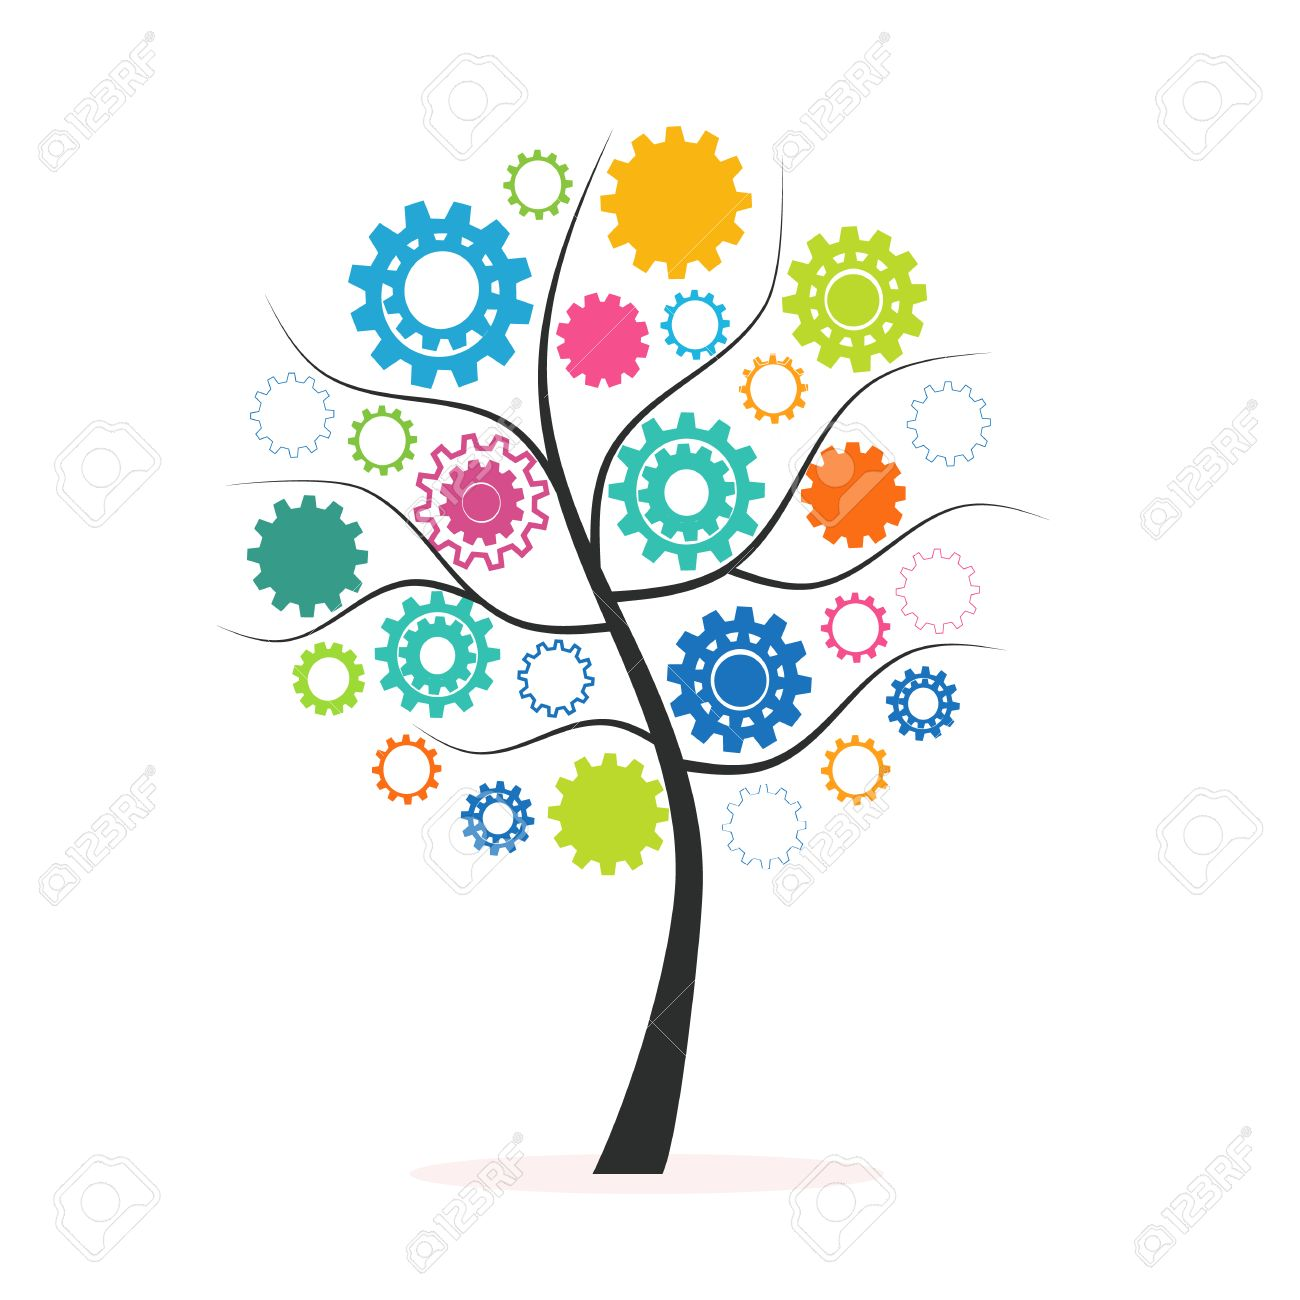 Industrial innovation concept tree made from colorful cogs and gears vector - 46578975